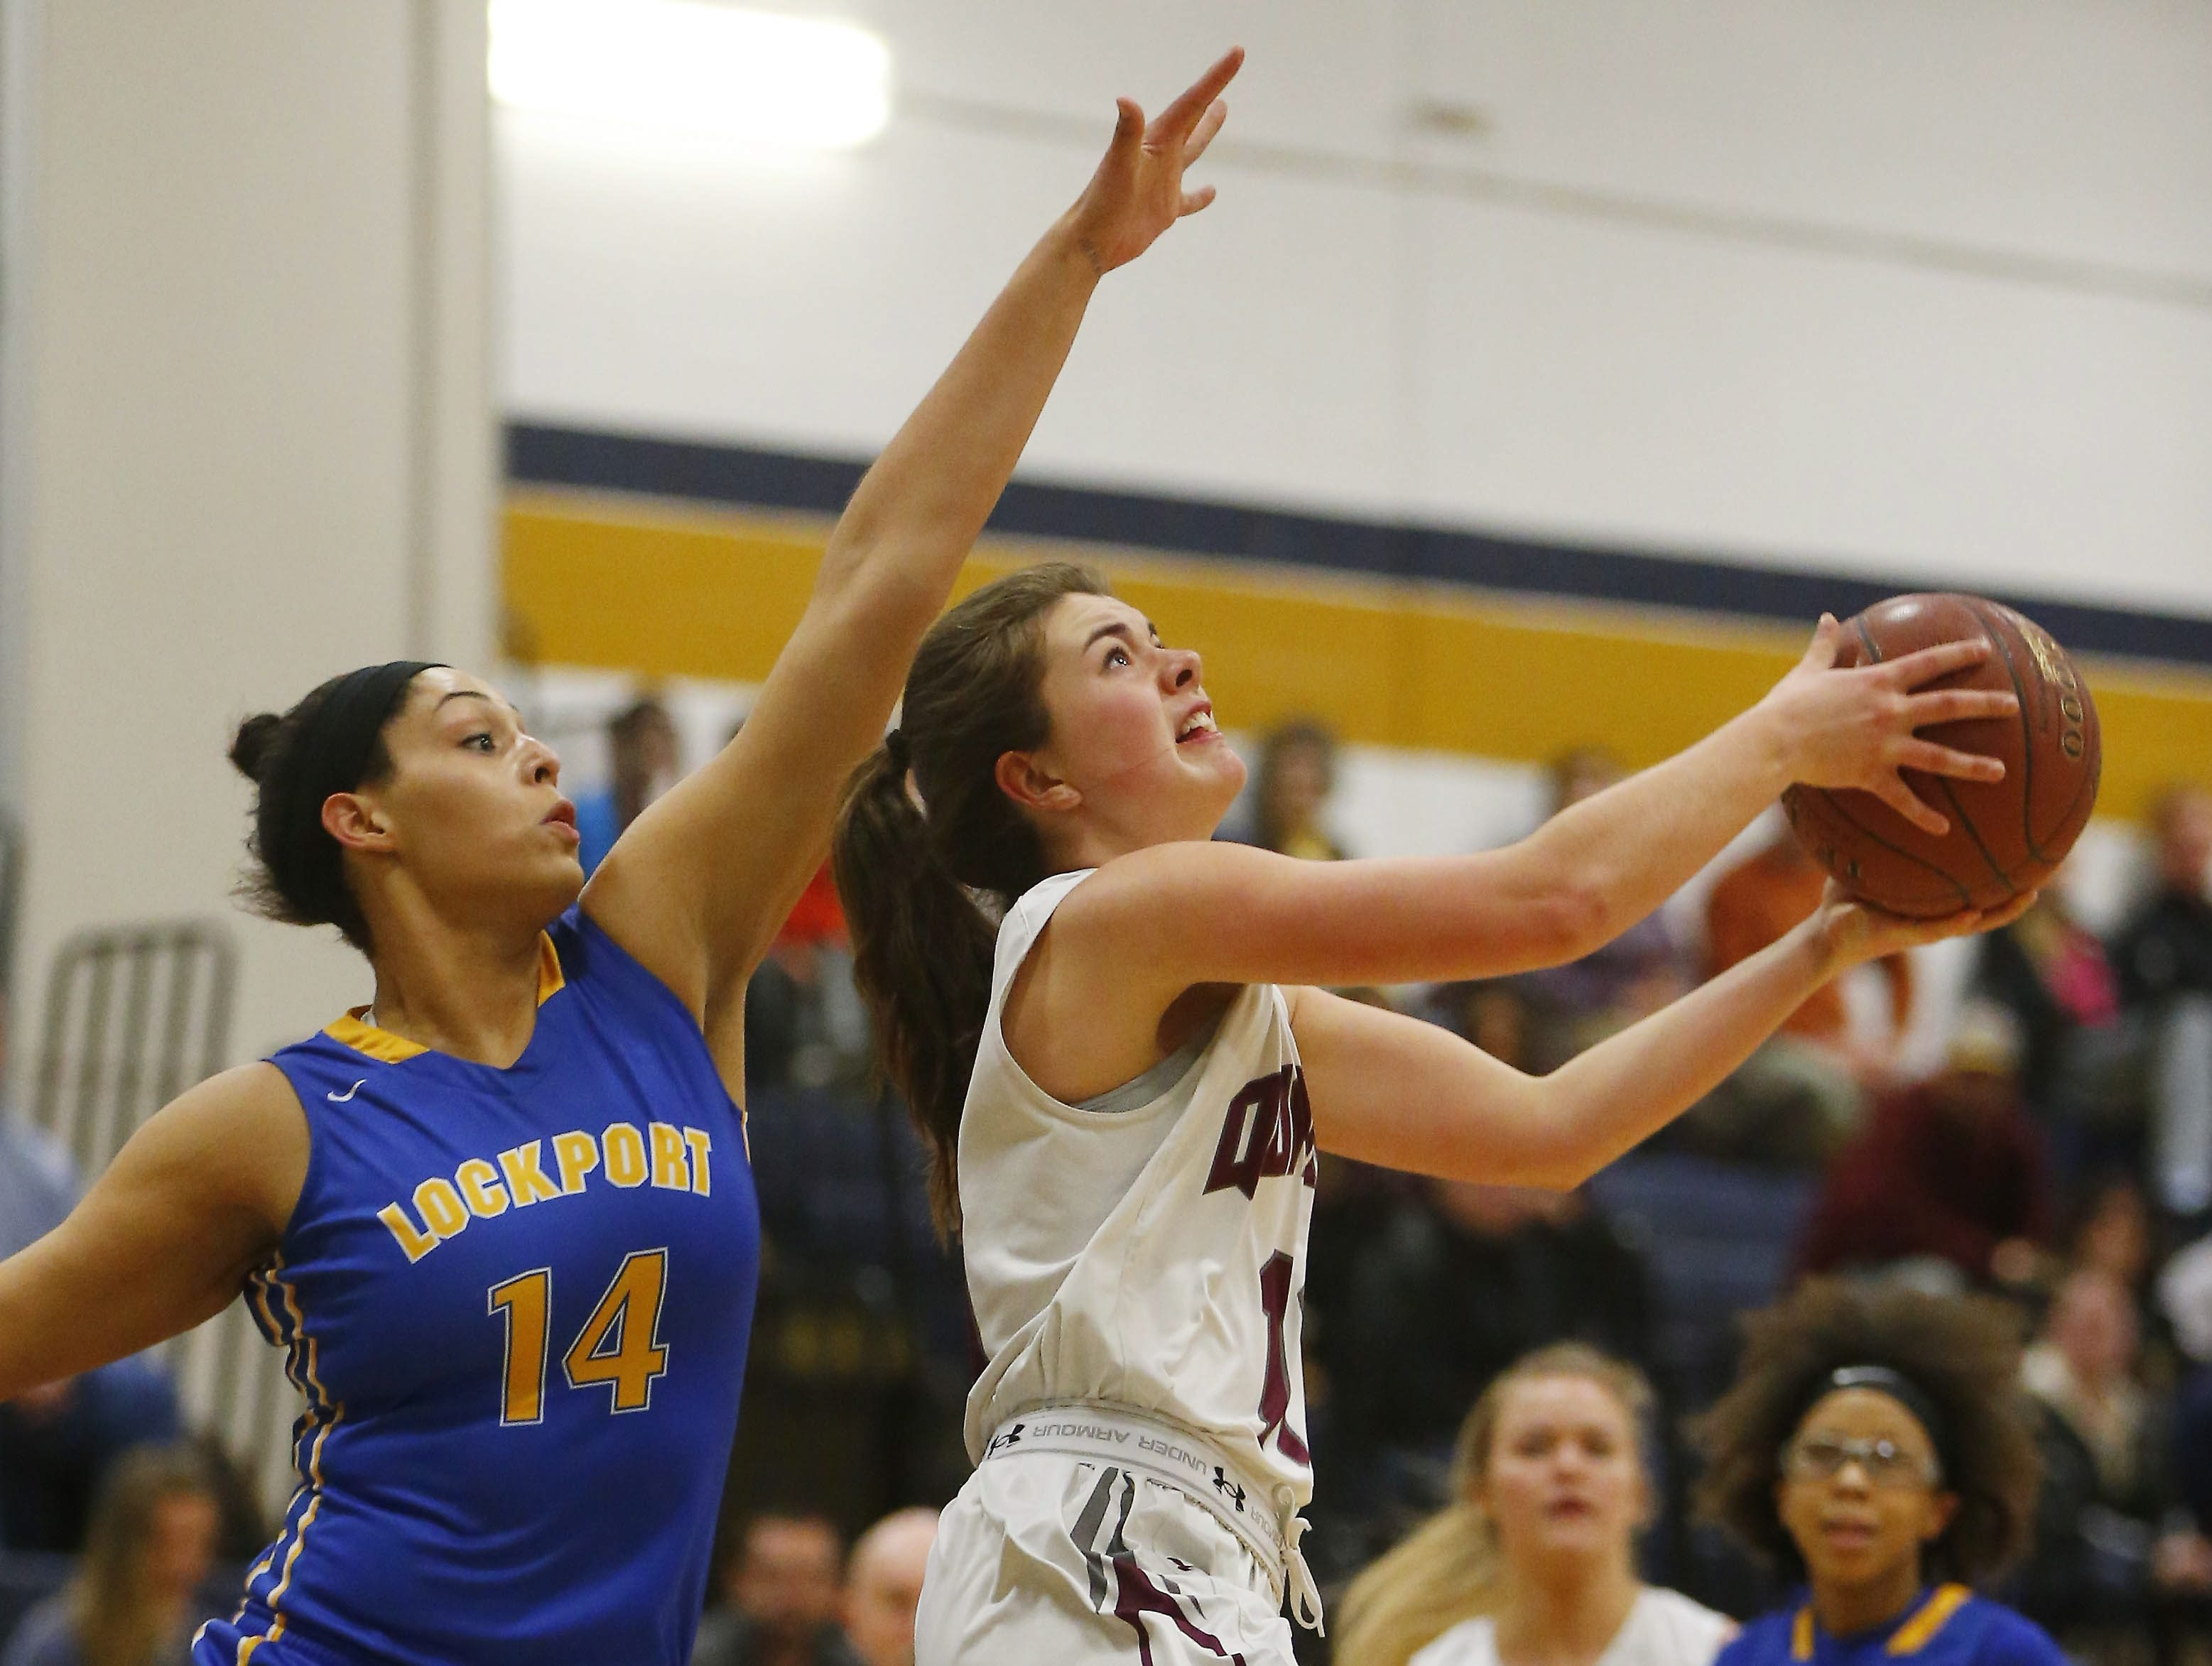 Orchard Park's Jaimee Glendenning drives to the hoop on Lockport's Brooklyn Camarra in the first half of their Class AA semifinal at Sweet Home on Friday. The Quakers earned a 61-41 win.